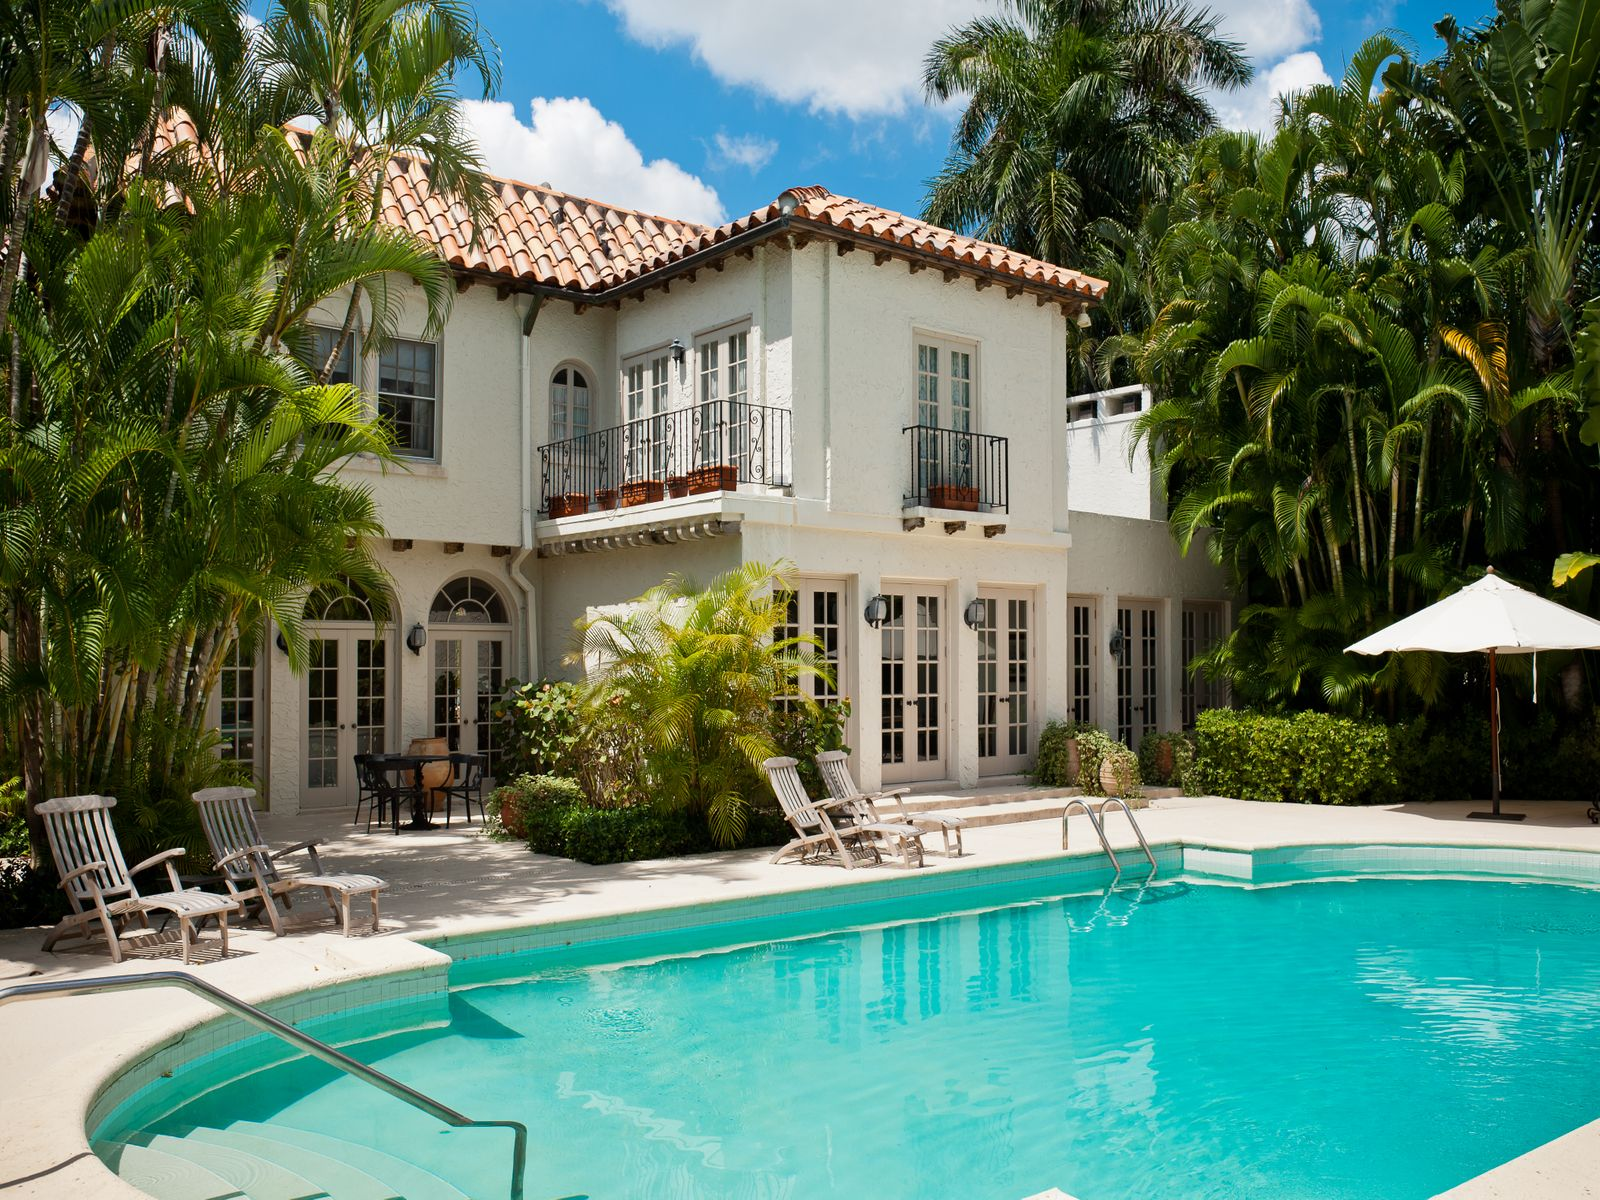 Clarke Avenue Charm, Palm Beach FL Single Family Home - Palm Beach Real Estate